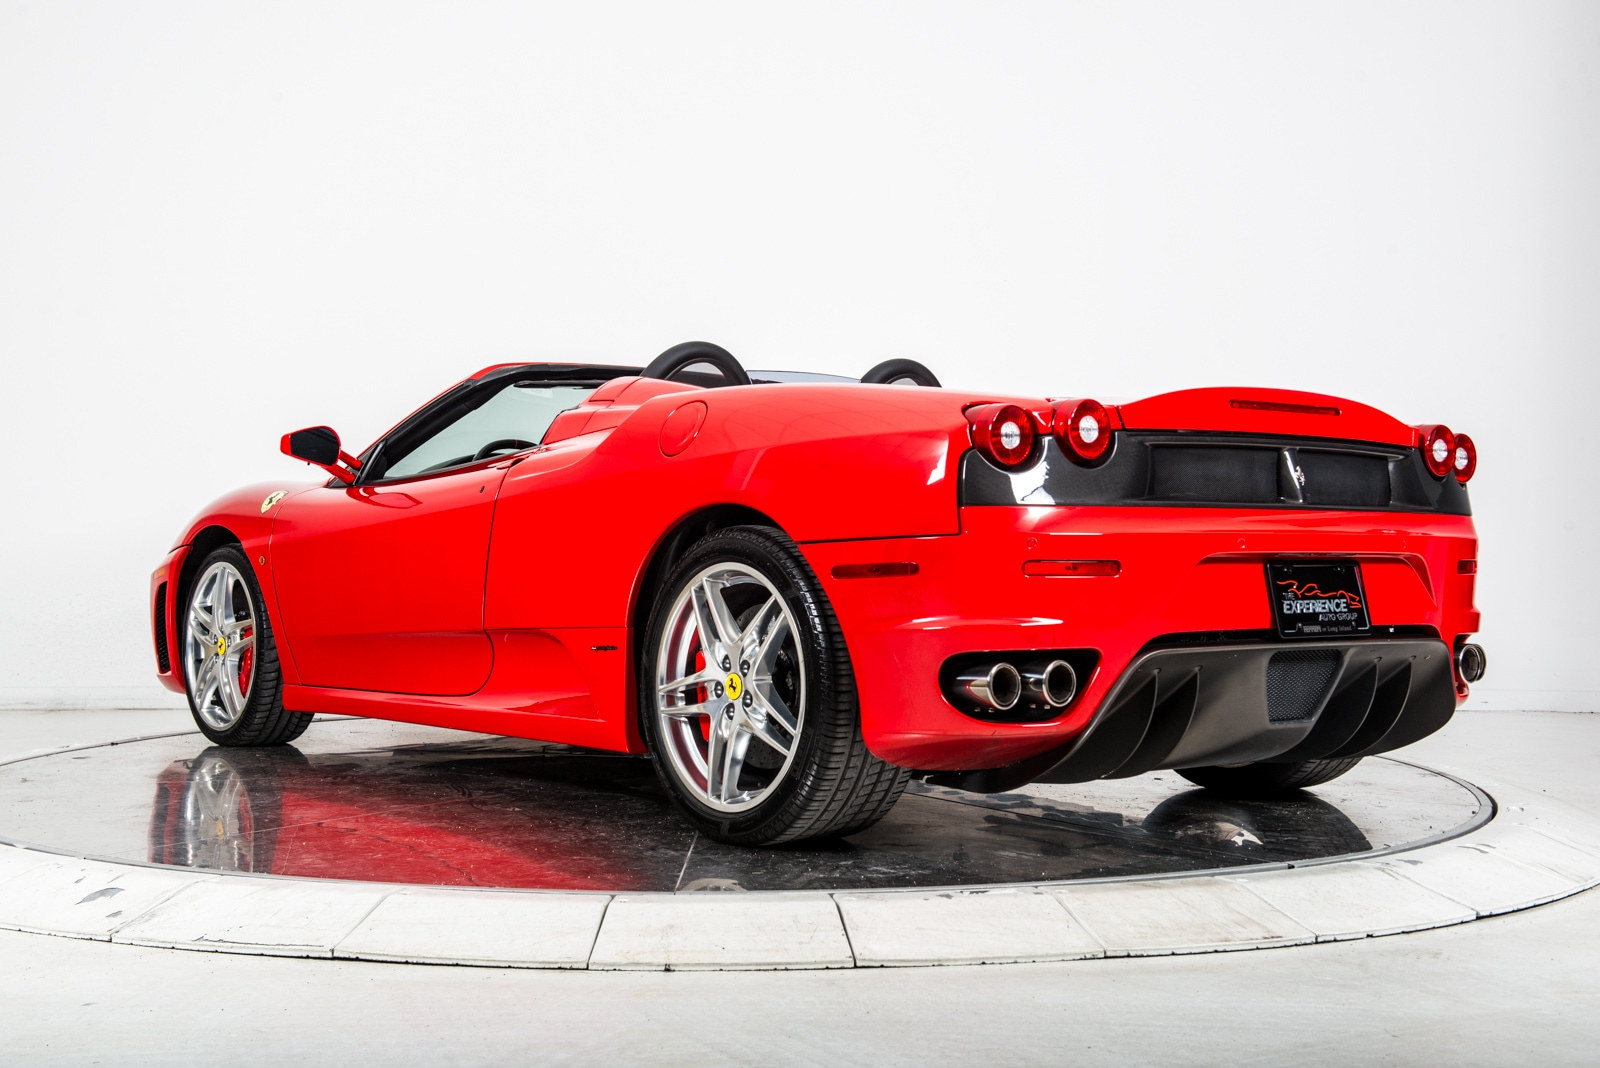 used 2008 ferrari f430 spider f1 for sale plainview near long island ny vin zffew59a080161409. Black Bedroom Furniture Sets. Home Design Ideas